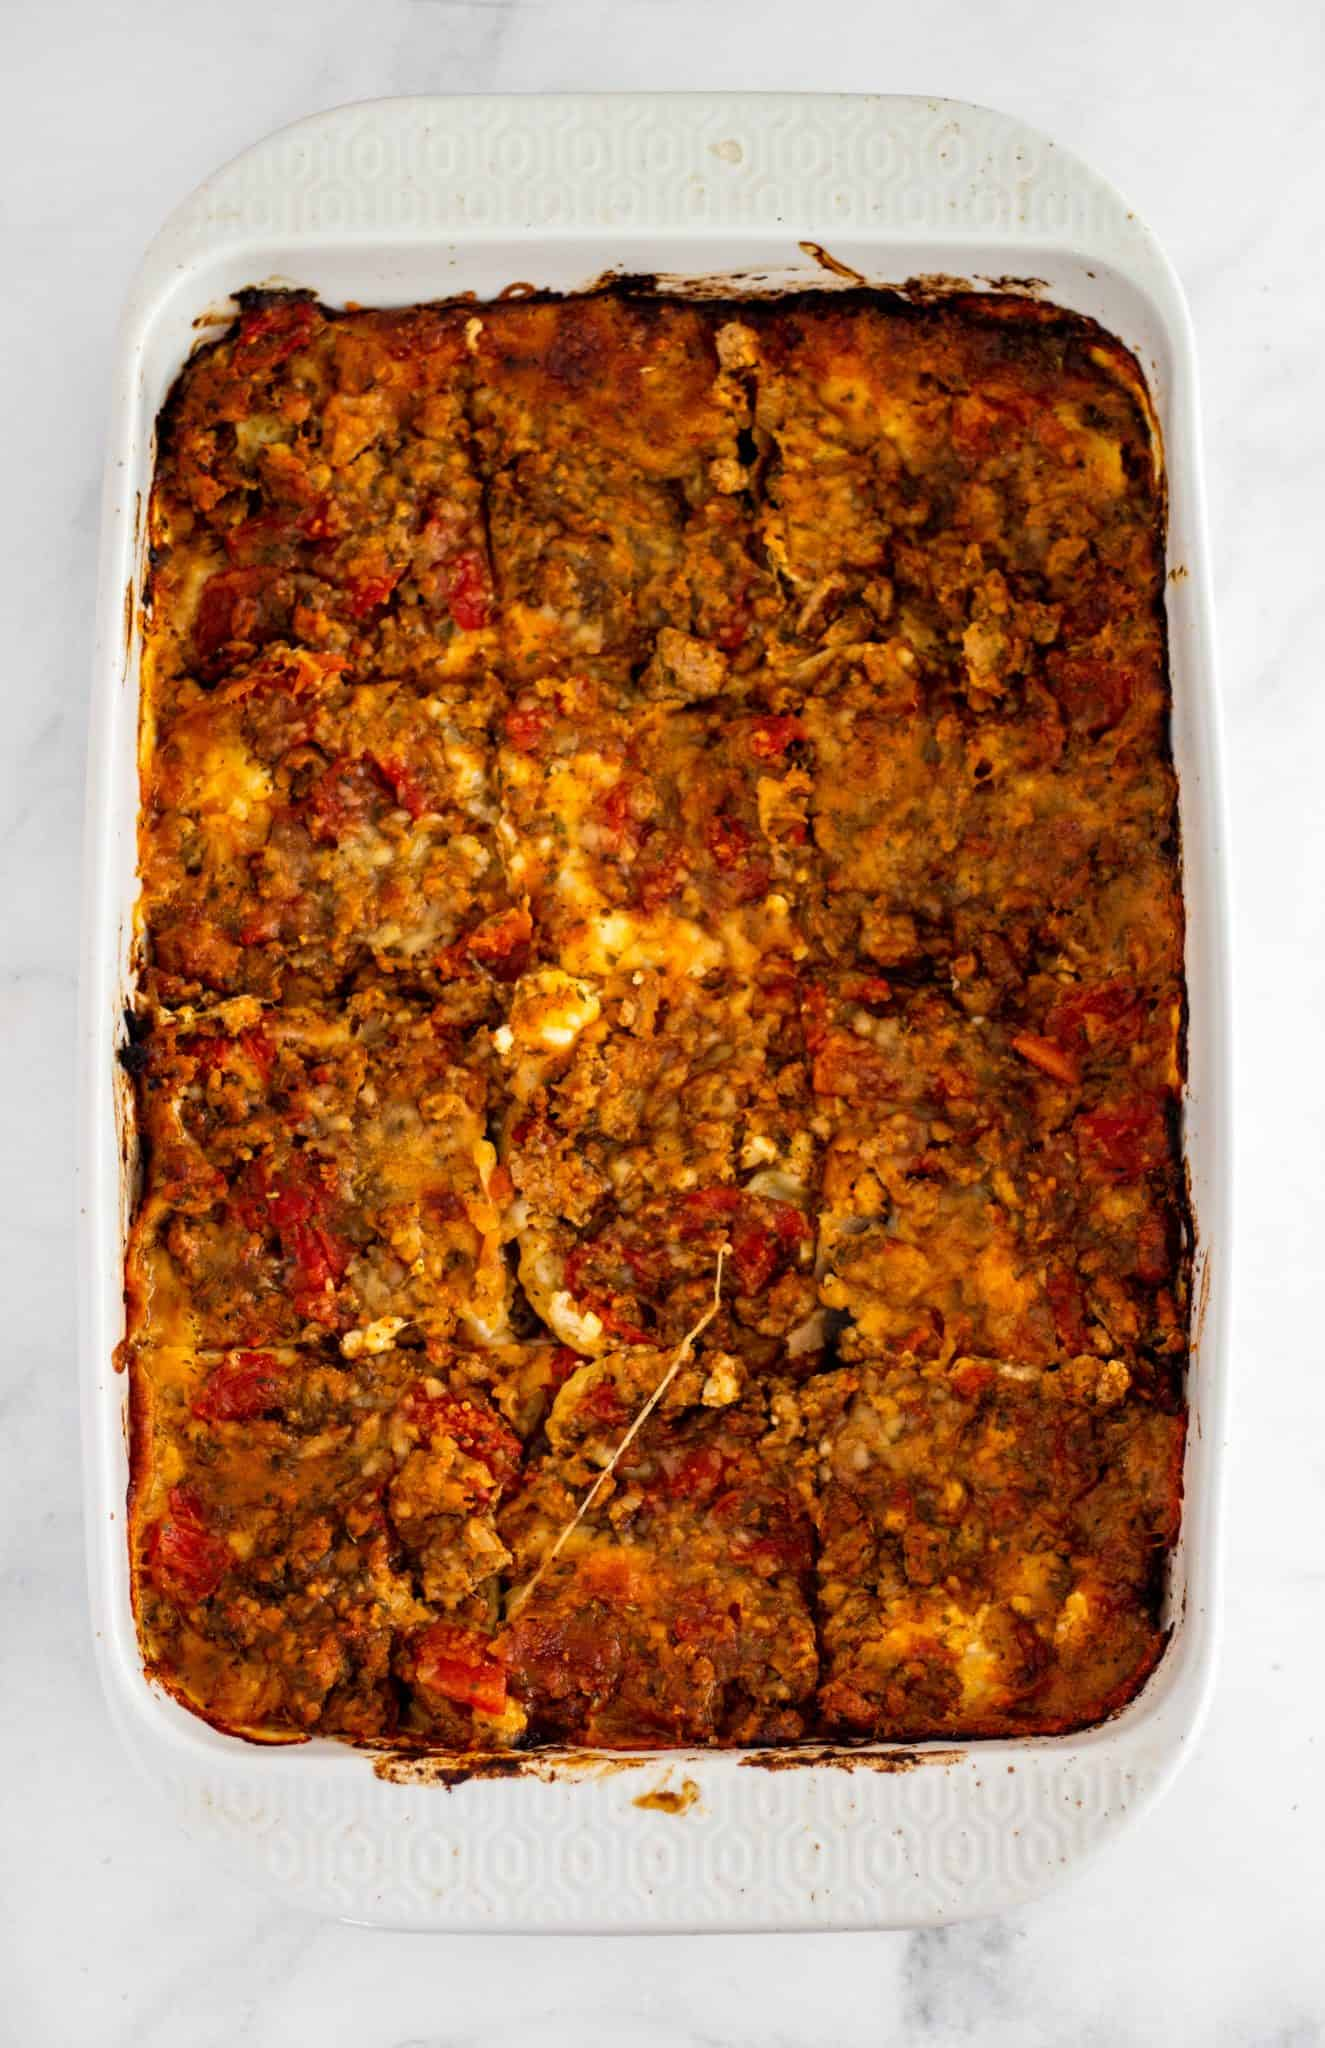 Pumpkin and Roasted Vegetable Lasagna | Tara Rochford Nutrition #cansforcomfort #ad